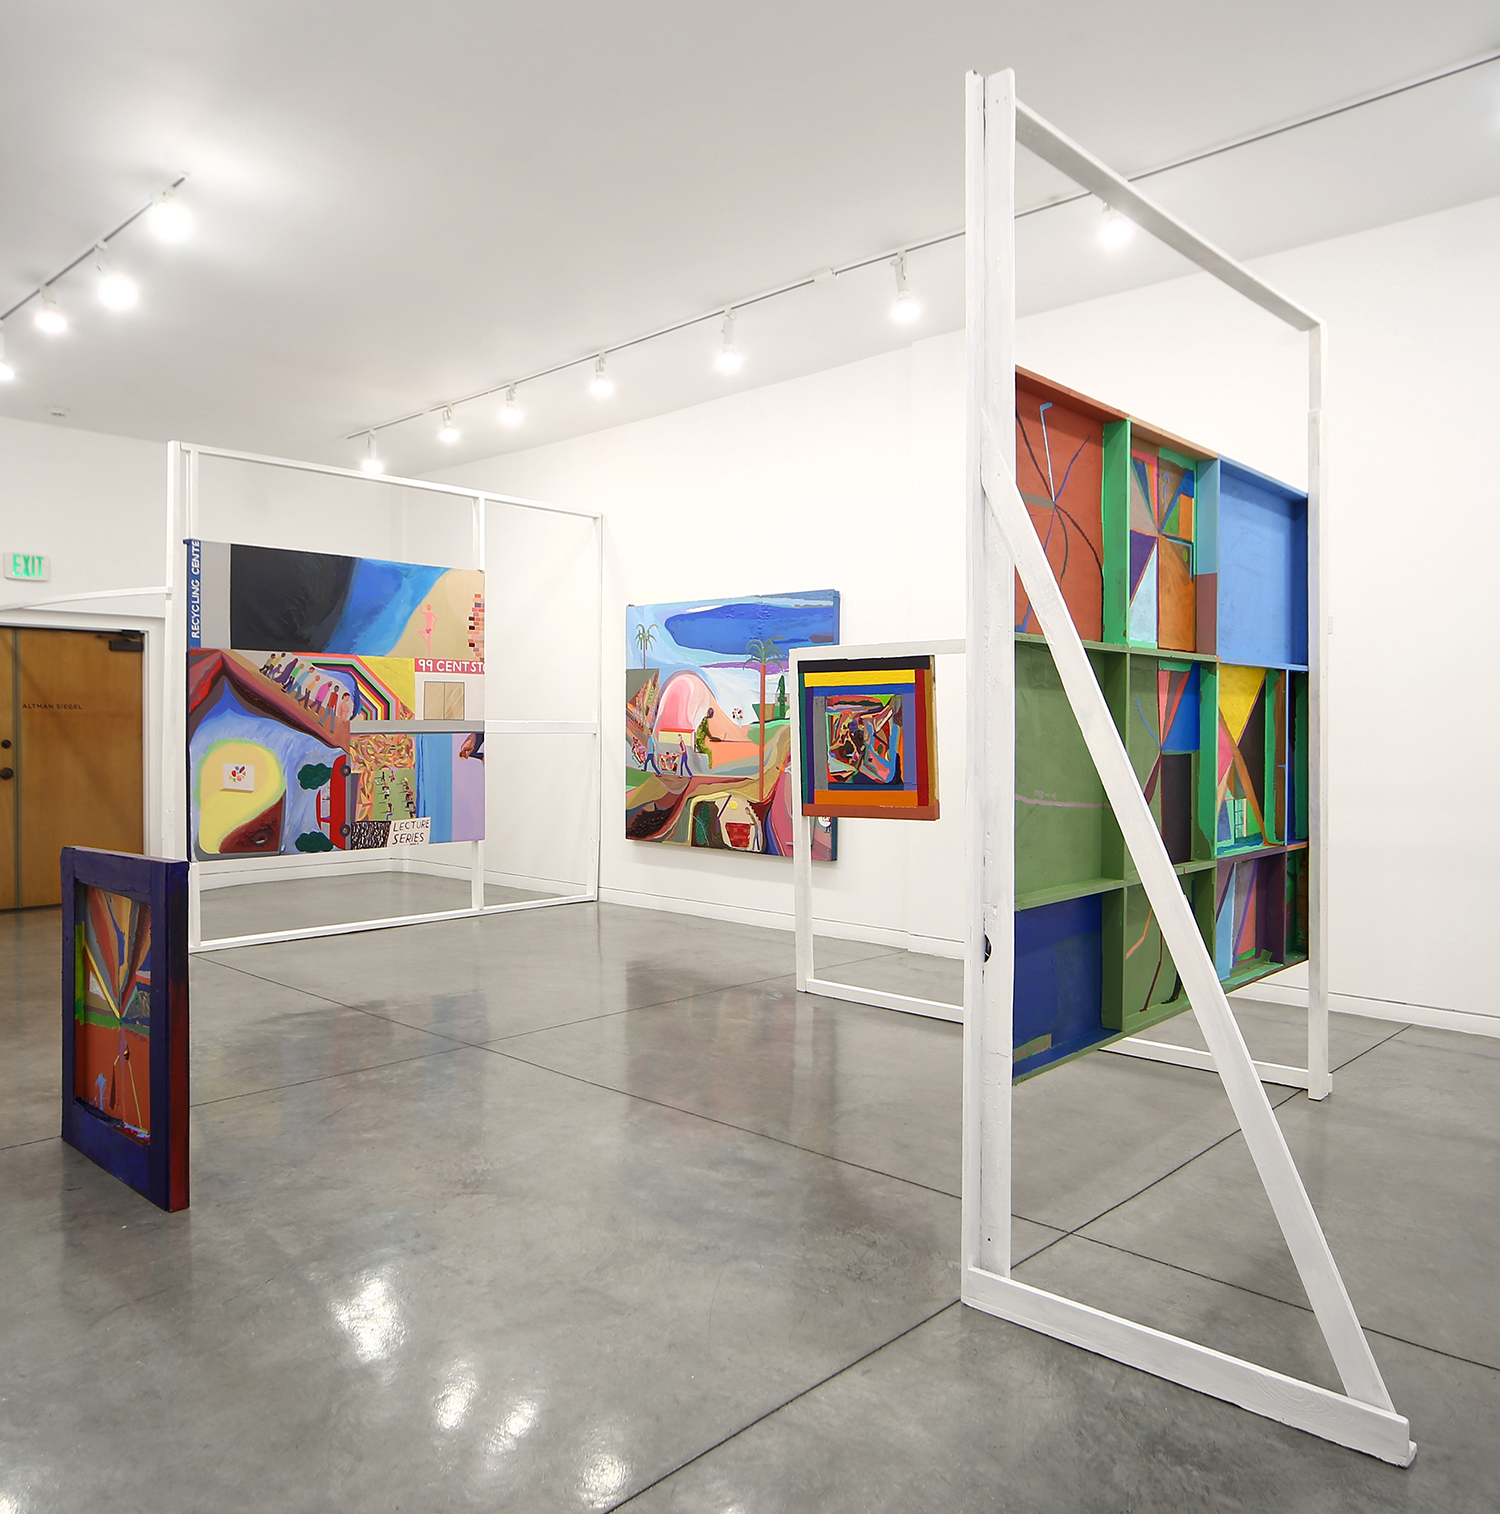 Chris Johanson, Equations, 2015. Installation view, Altman Siegel, San Francisco. Courtesy of the Artist and Altman Siegel.